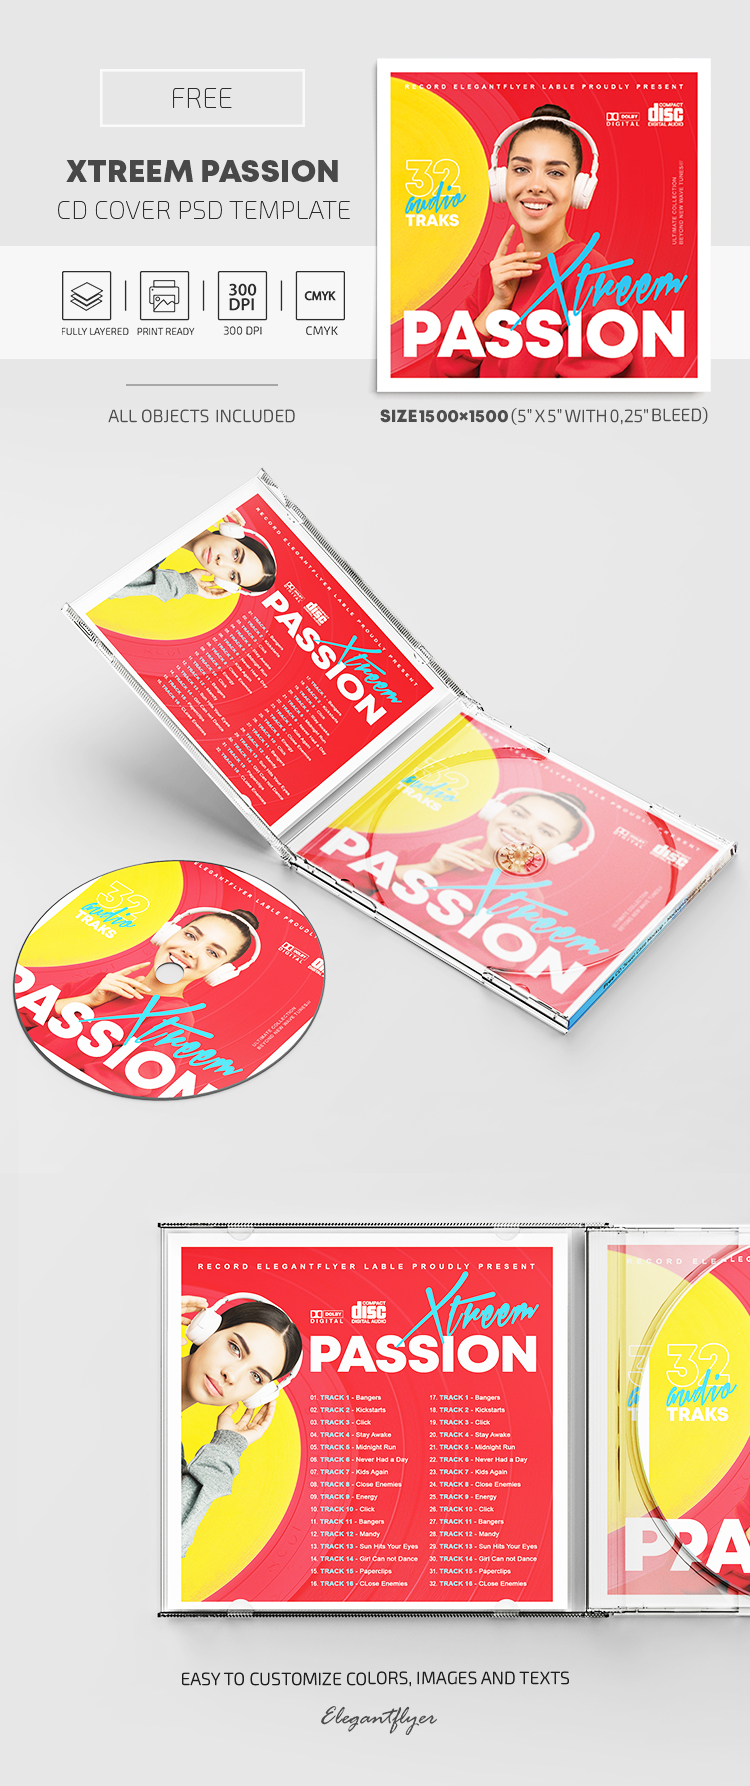 Xtreem Passion – Free CD Cover PSD Template